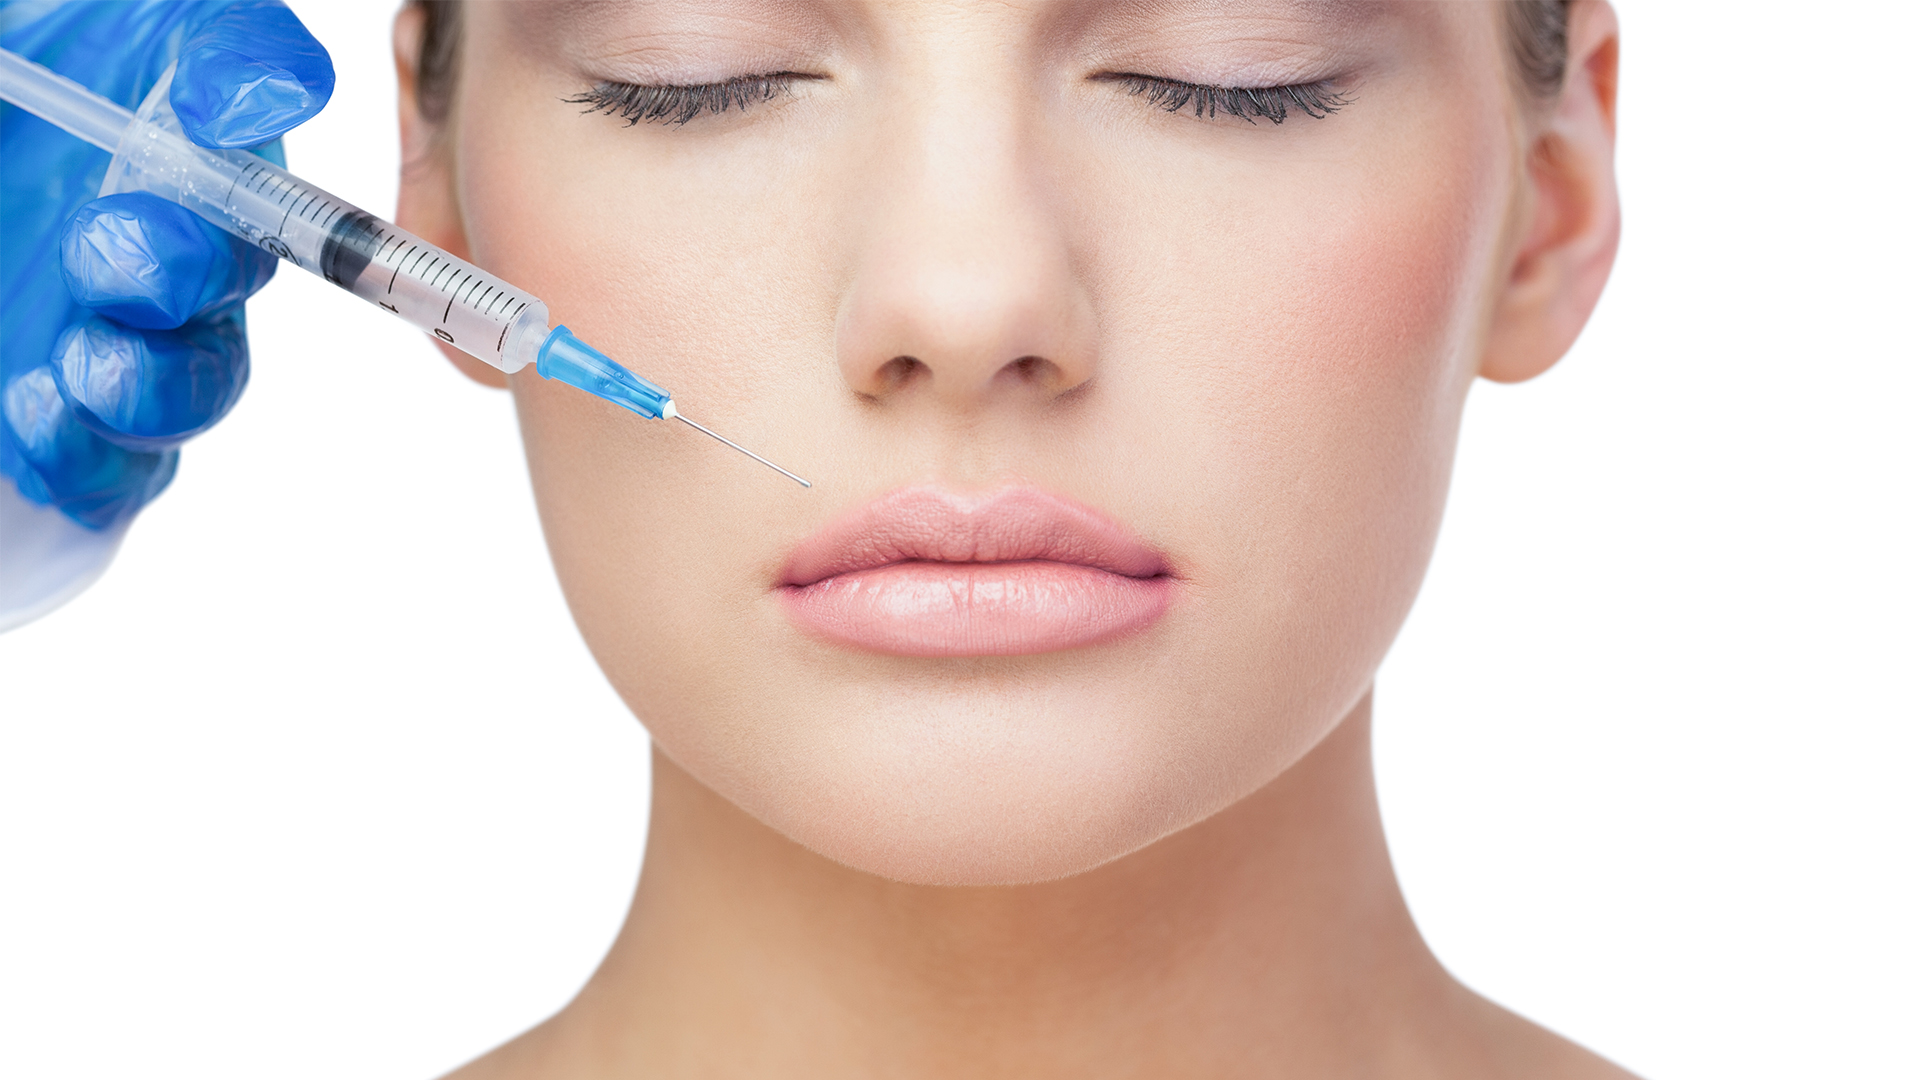 ANTI-WRINKLE (B-TOX) & FACIAL FILLERS